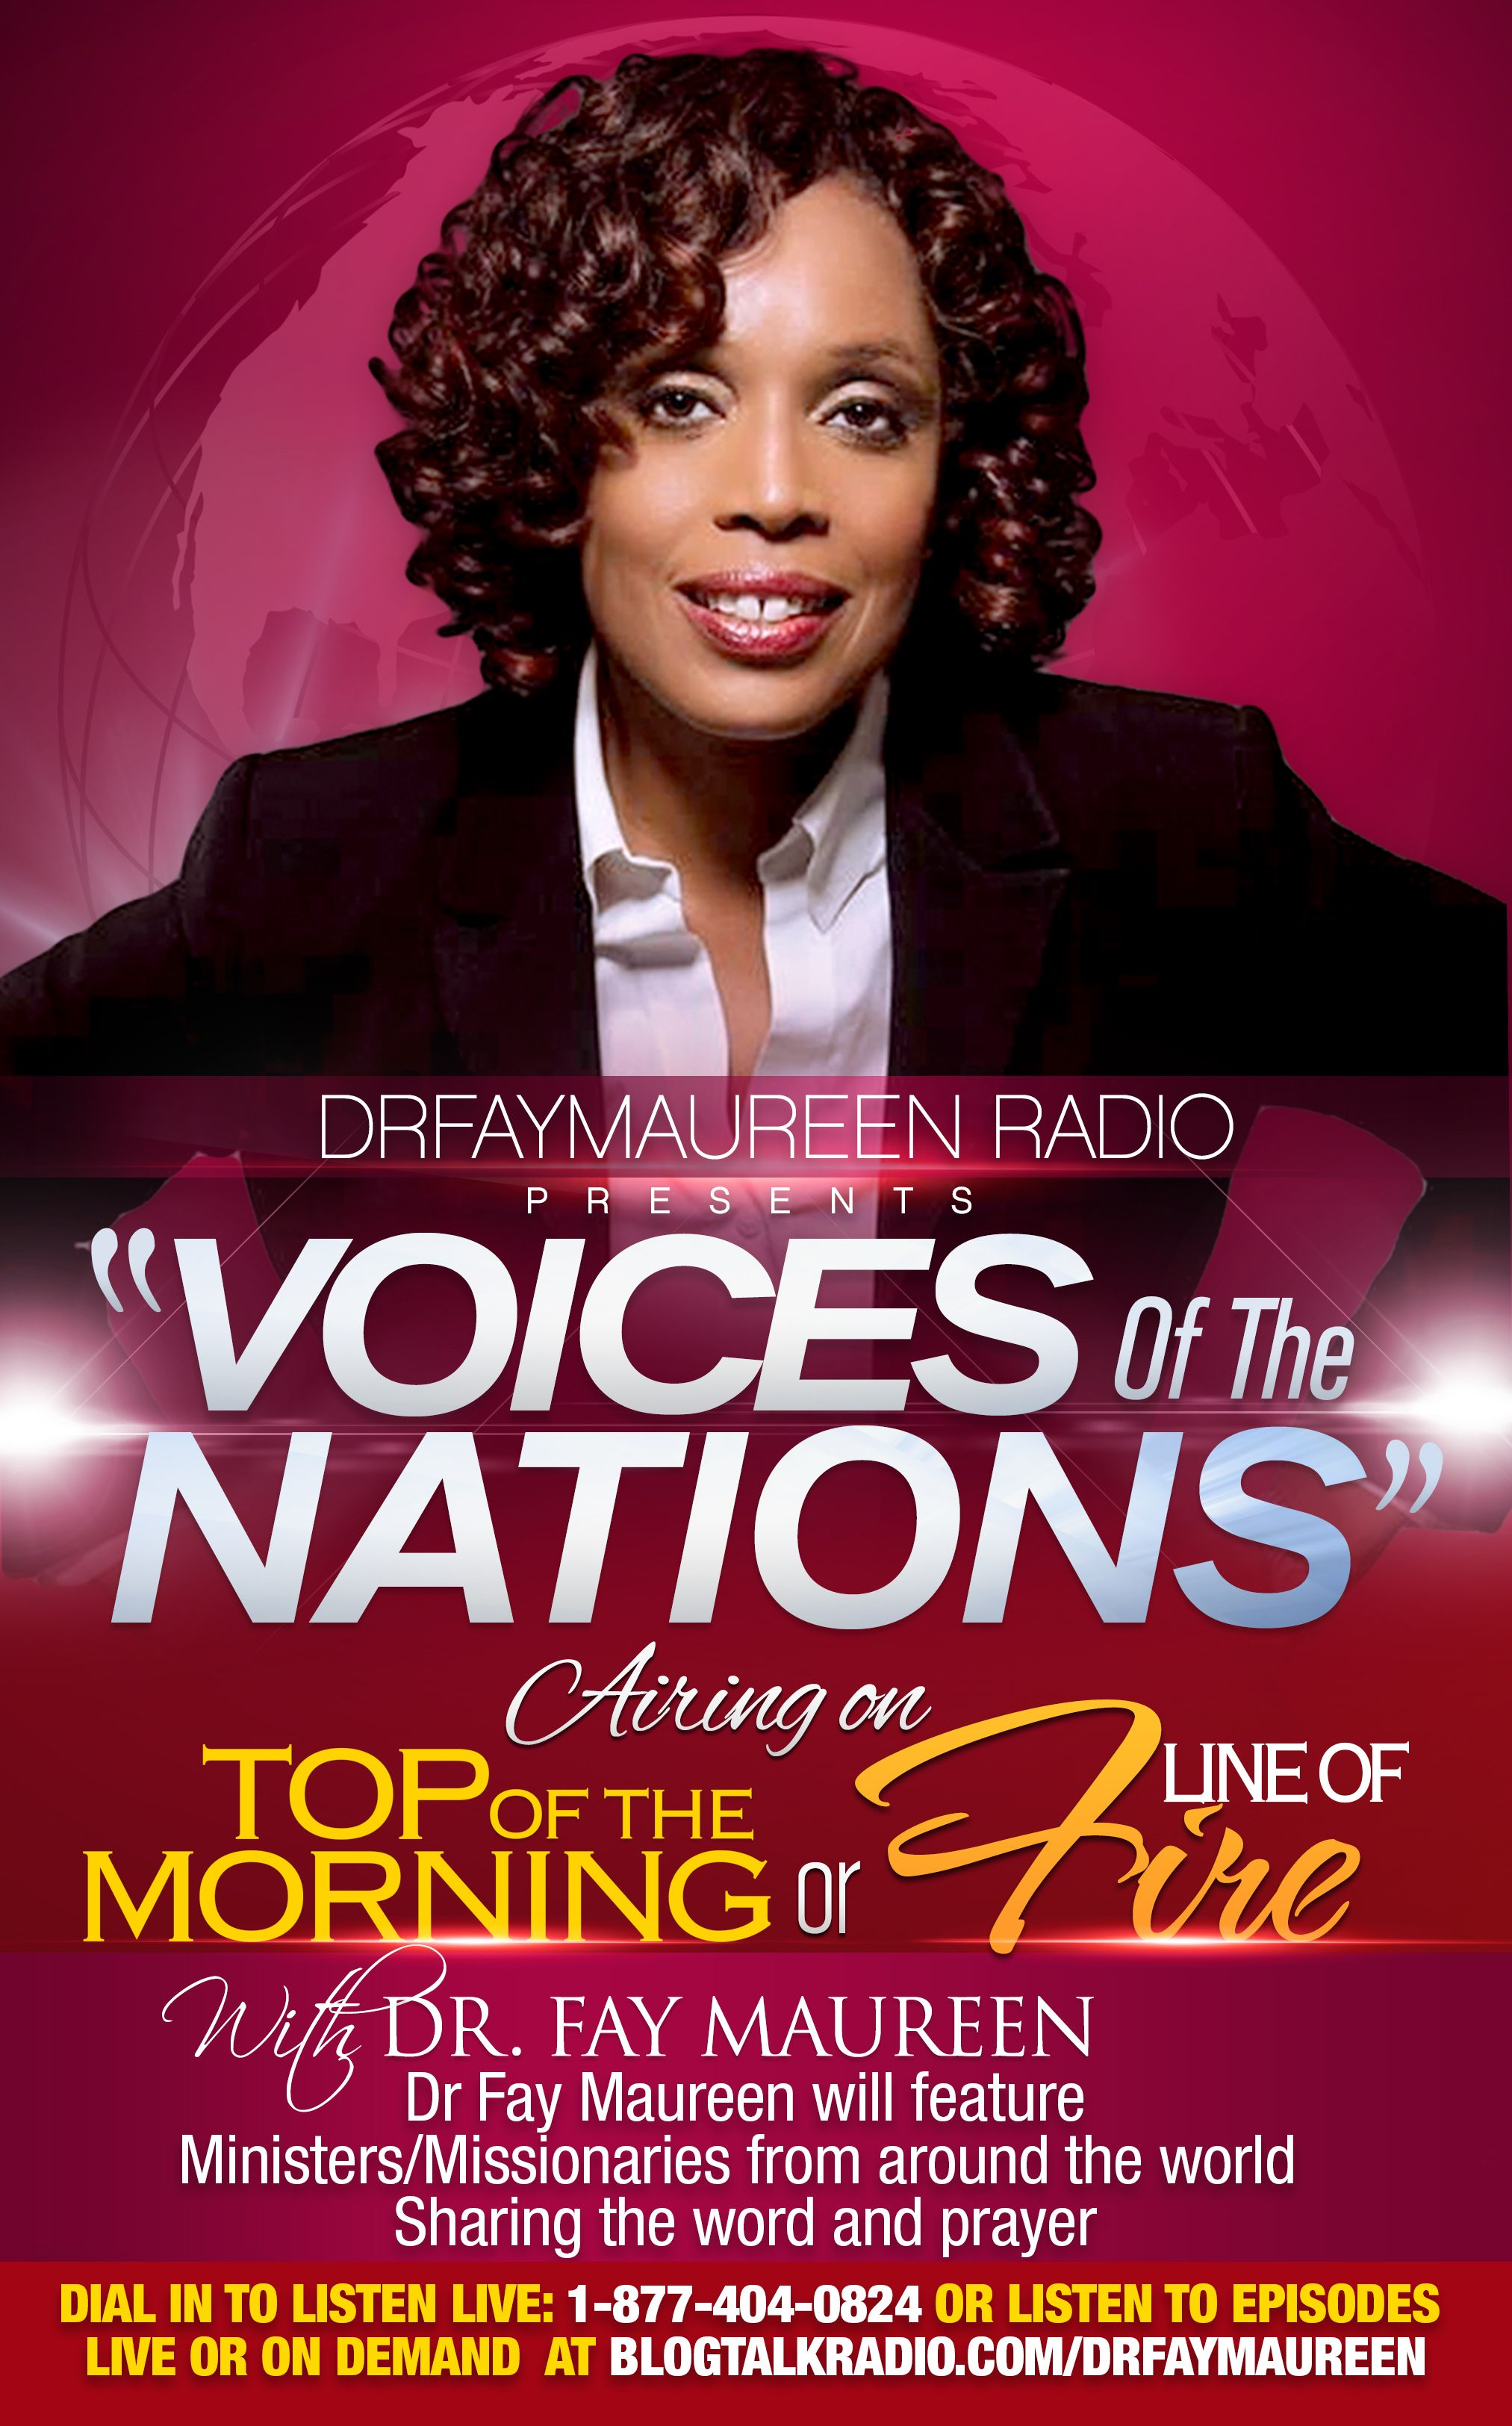 Voices of the Nations The voice, Radio, National